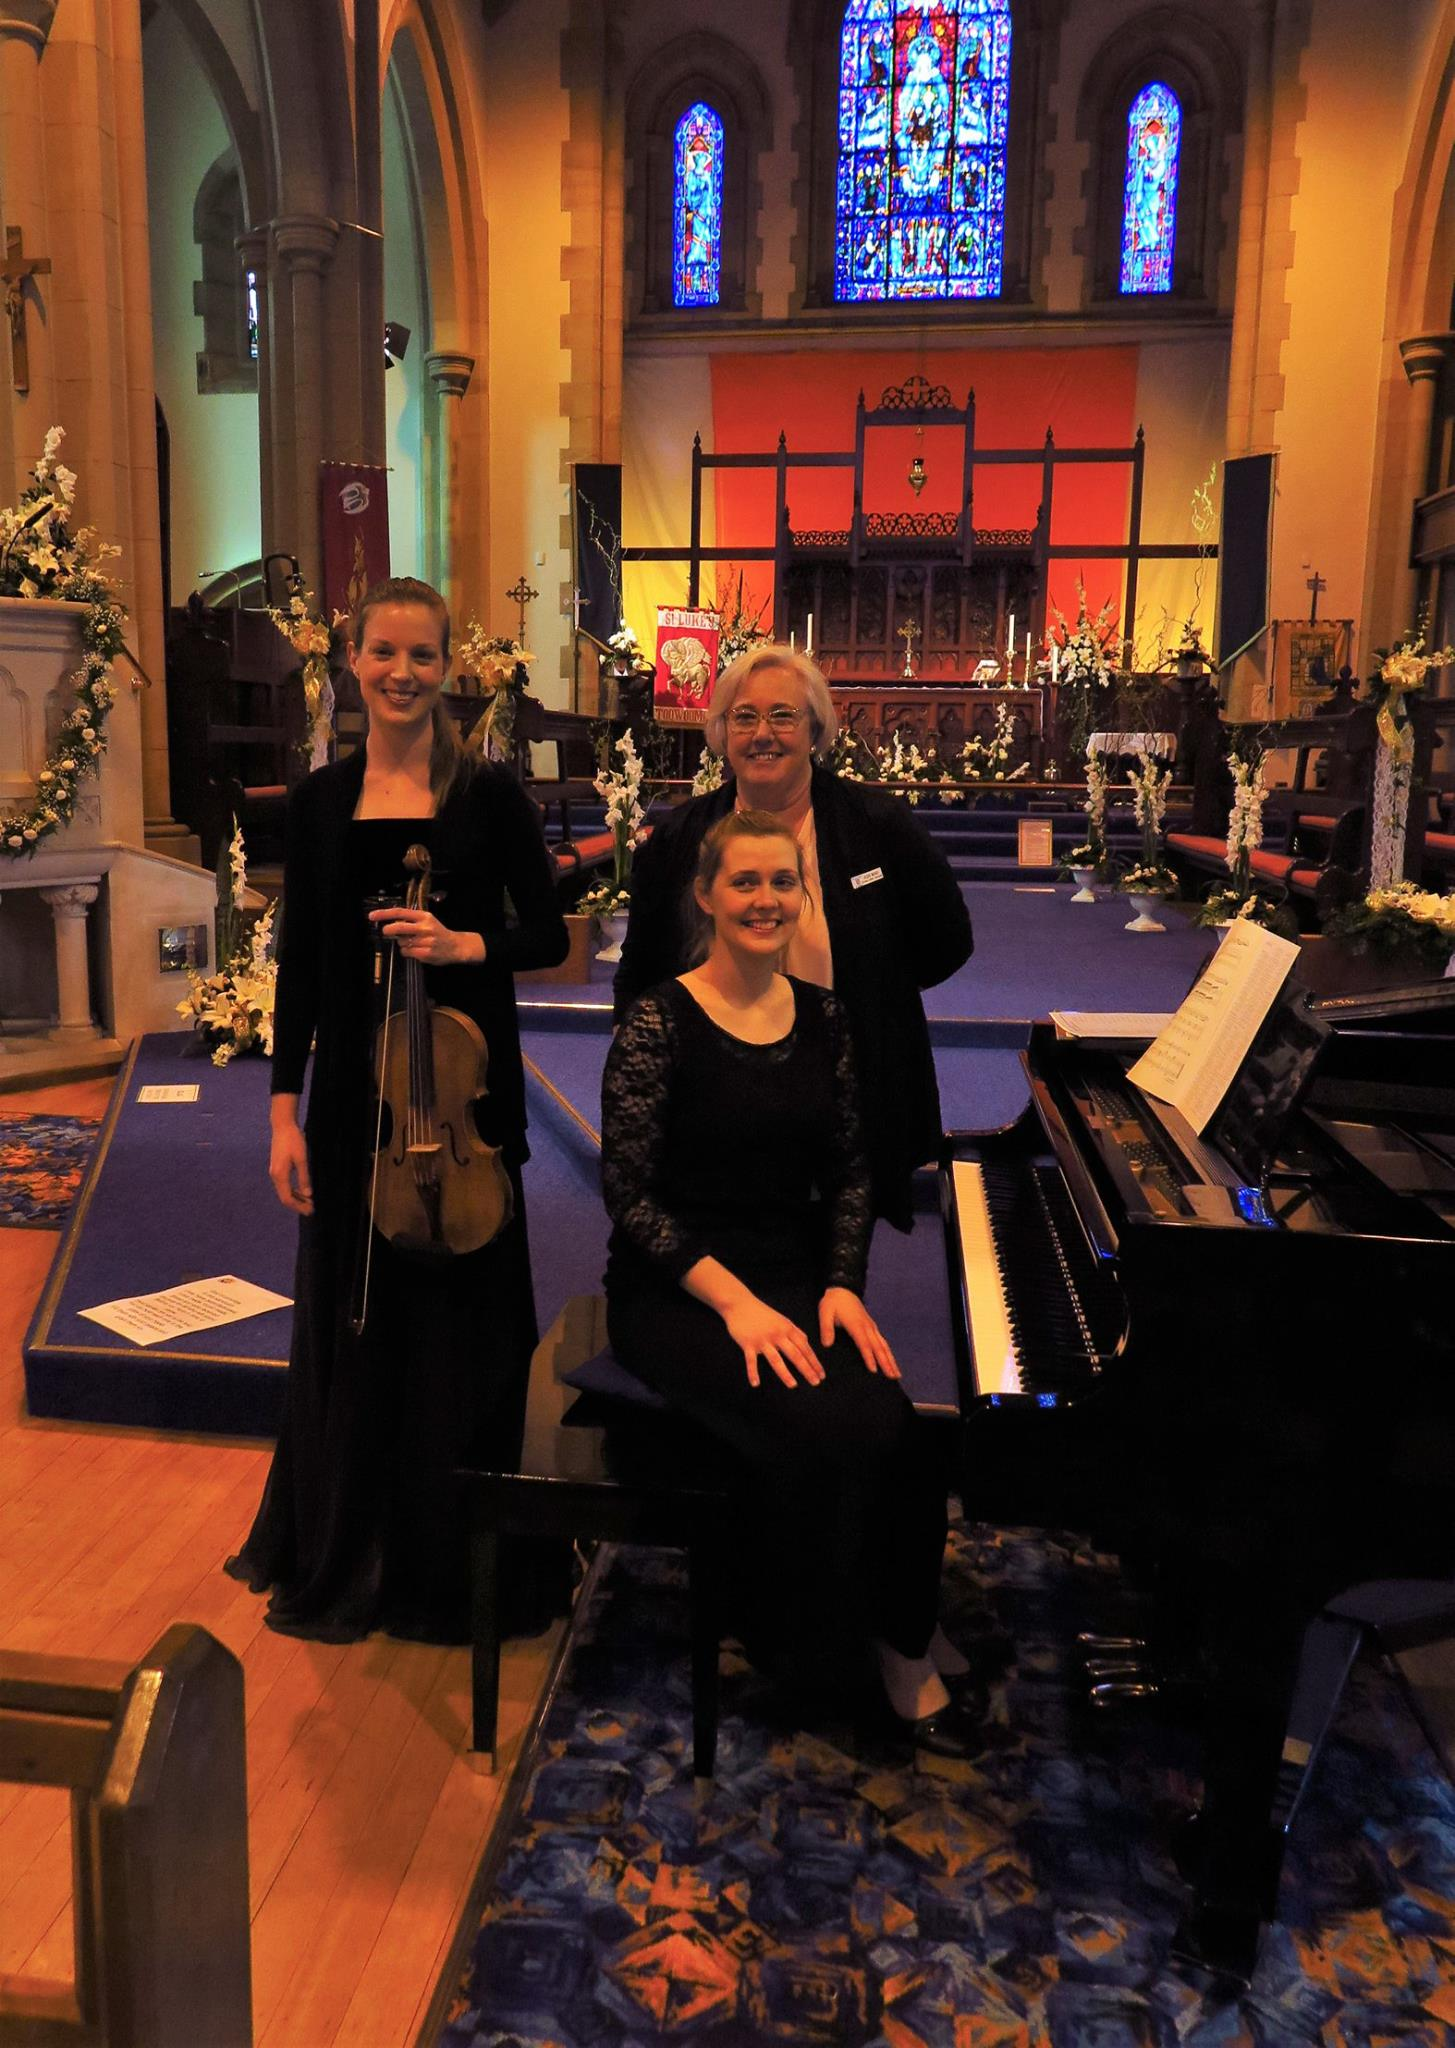 20-9-16 Lunch recital at St Luke's featuring Elizabeth Lawrence (viola) and Maree Kilpatrick (piano)